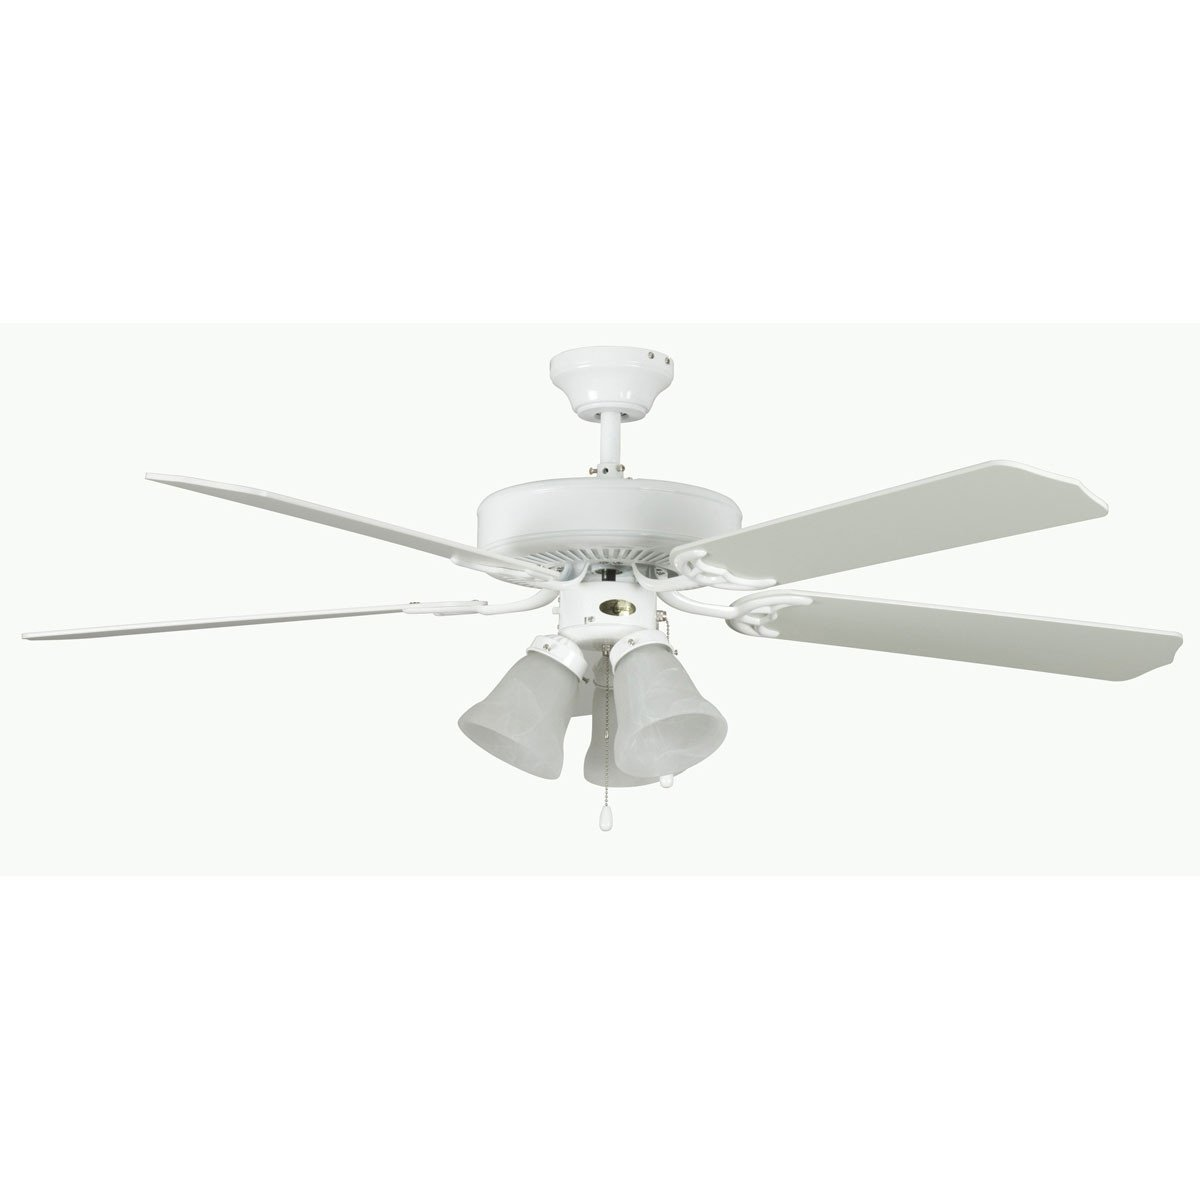 "Concord Fans 42"" Contemporary Small White Ceiling Fan with Lights"